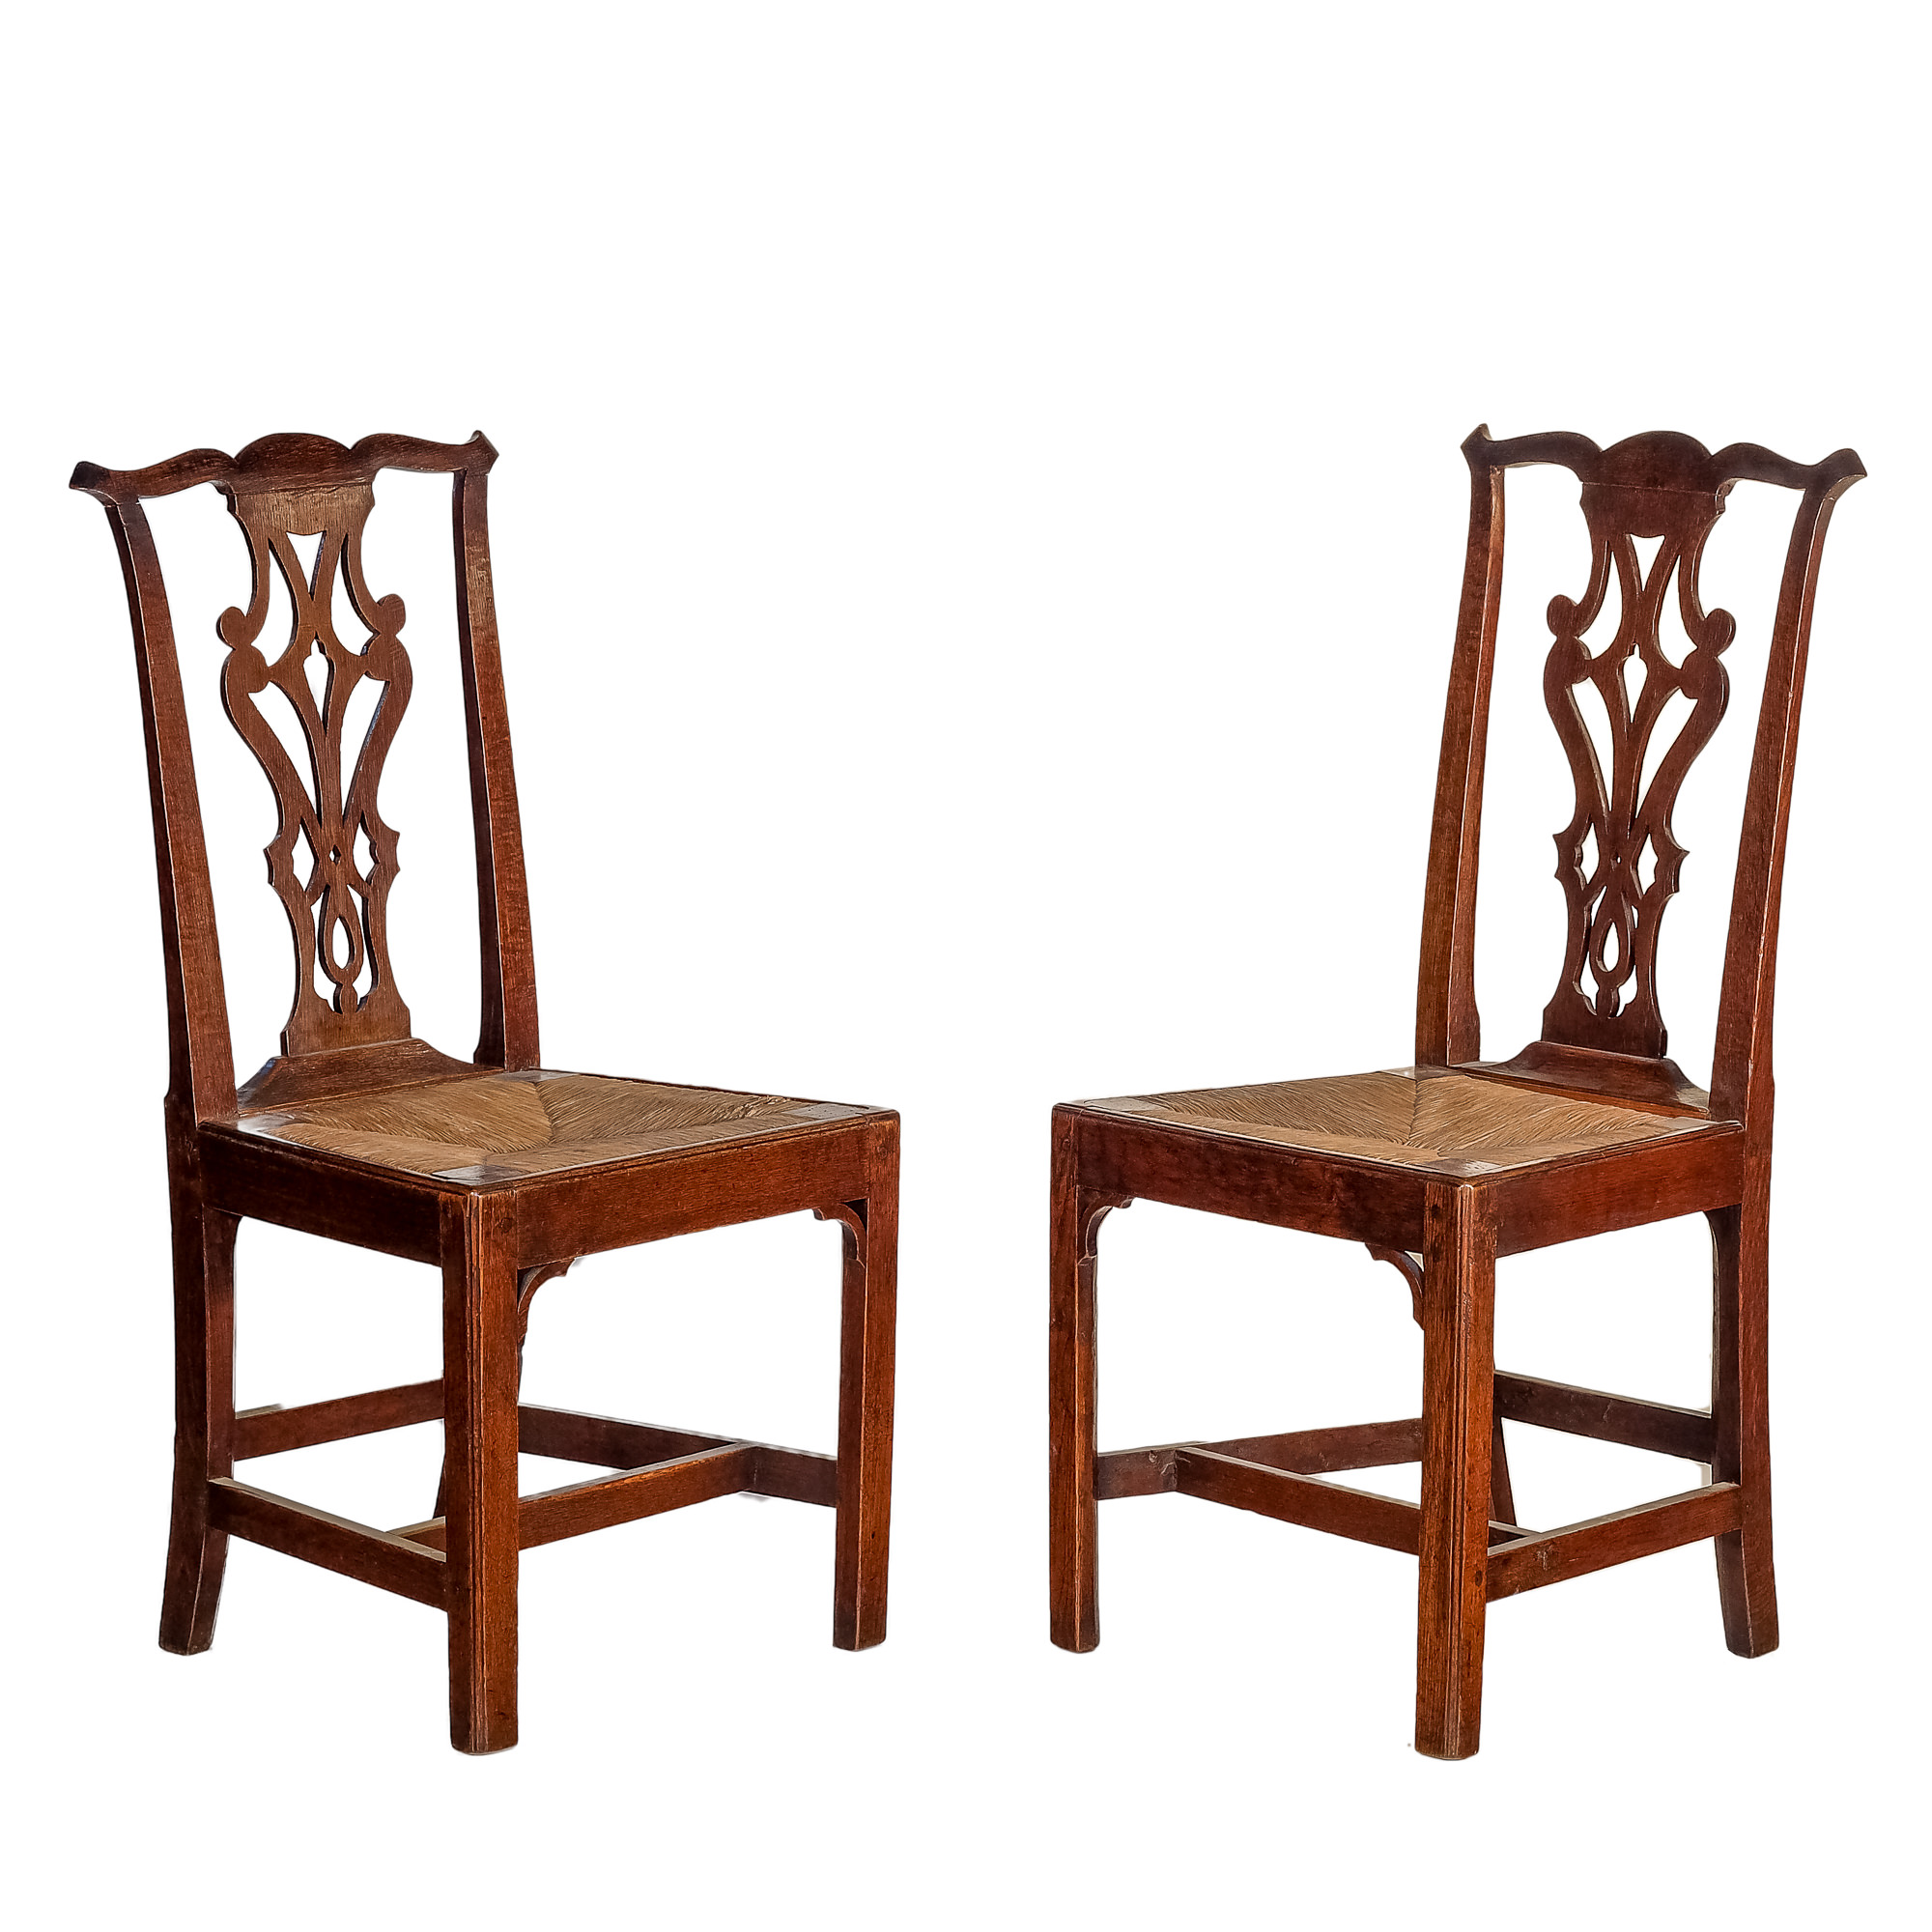 'A Pair of Georgian Country Oak Dining Chairs with Drop-in Rush Seats 19th Century'